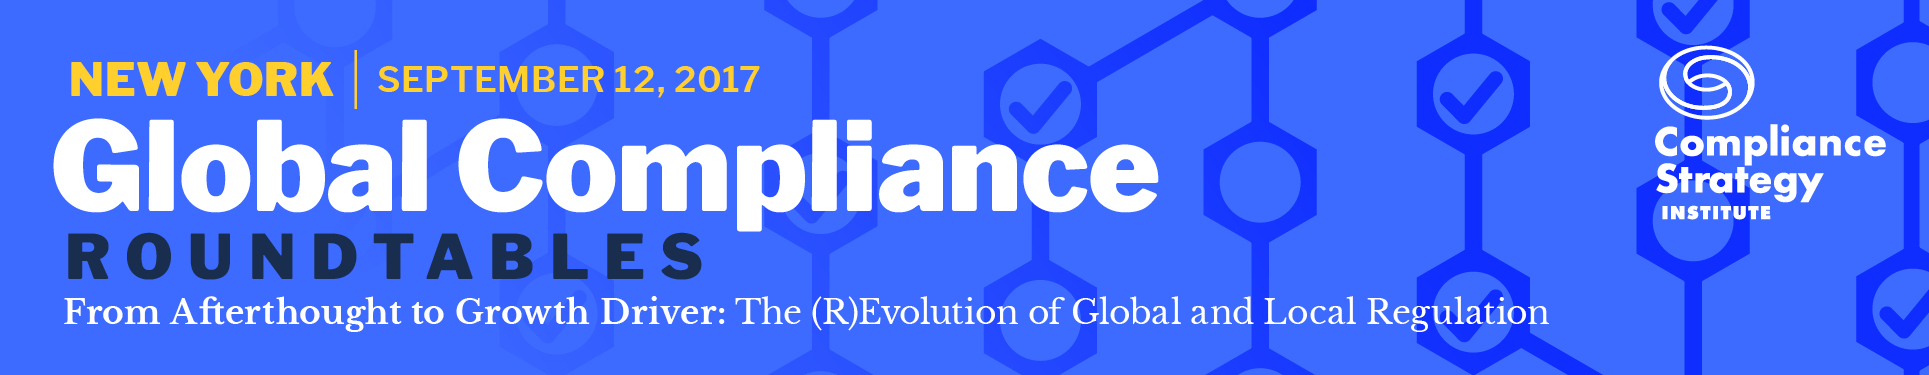 Global Compliance Roundtable, New York